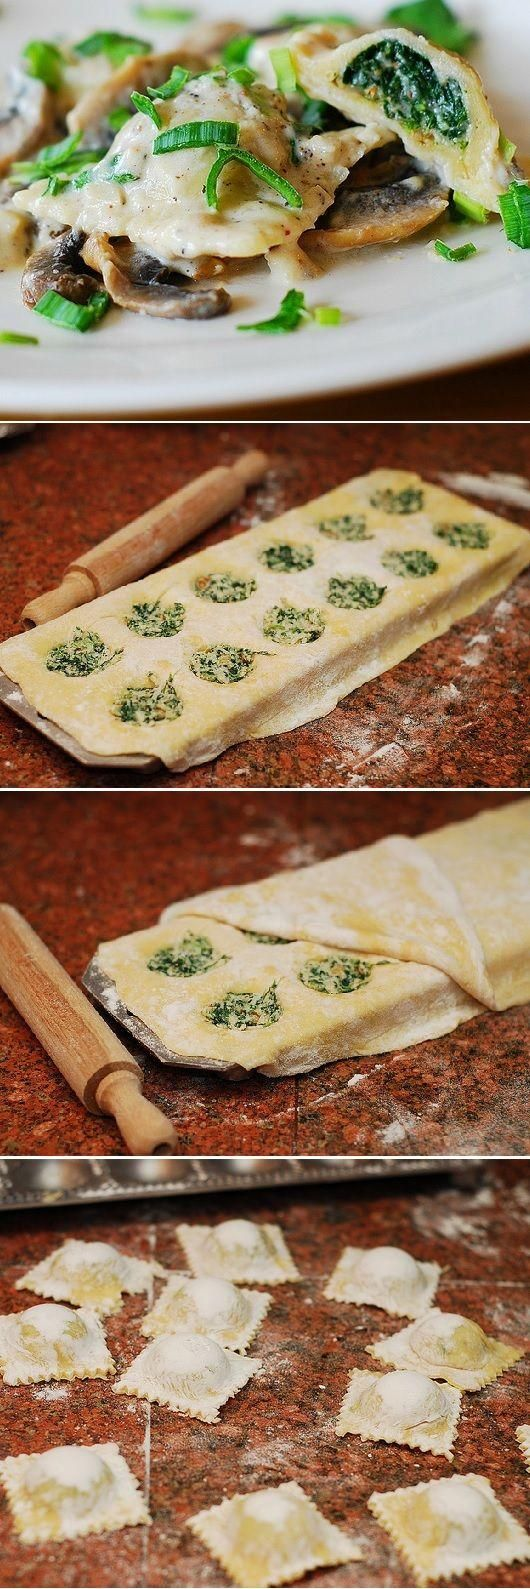 Ravioli with goat cheese and spinach filling in parmesan cream sauce (how to make ravioli from scratch)